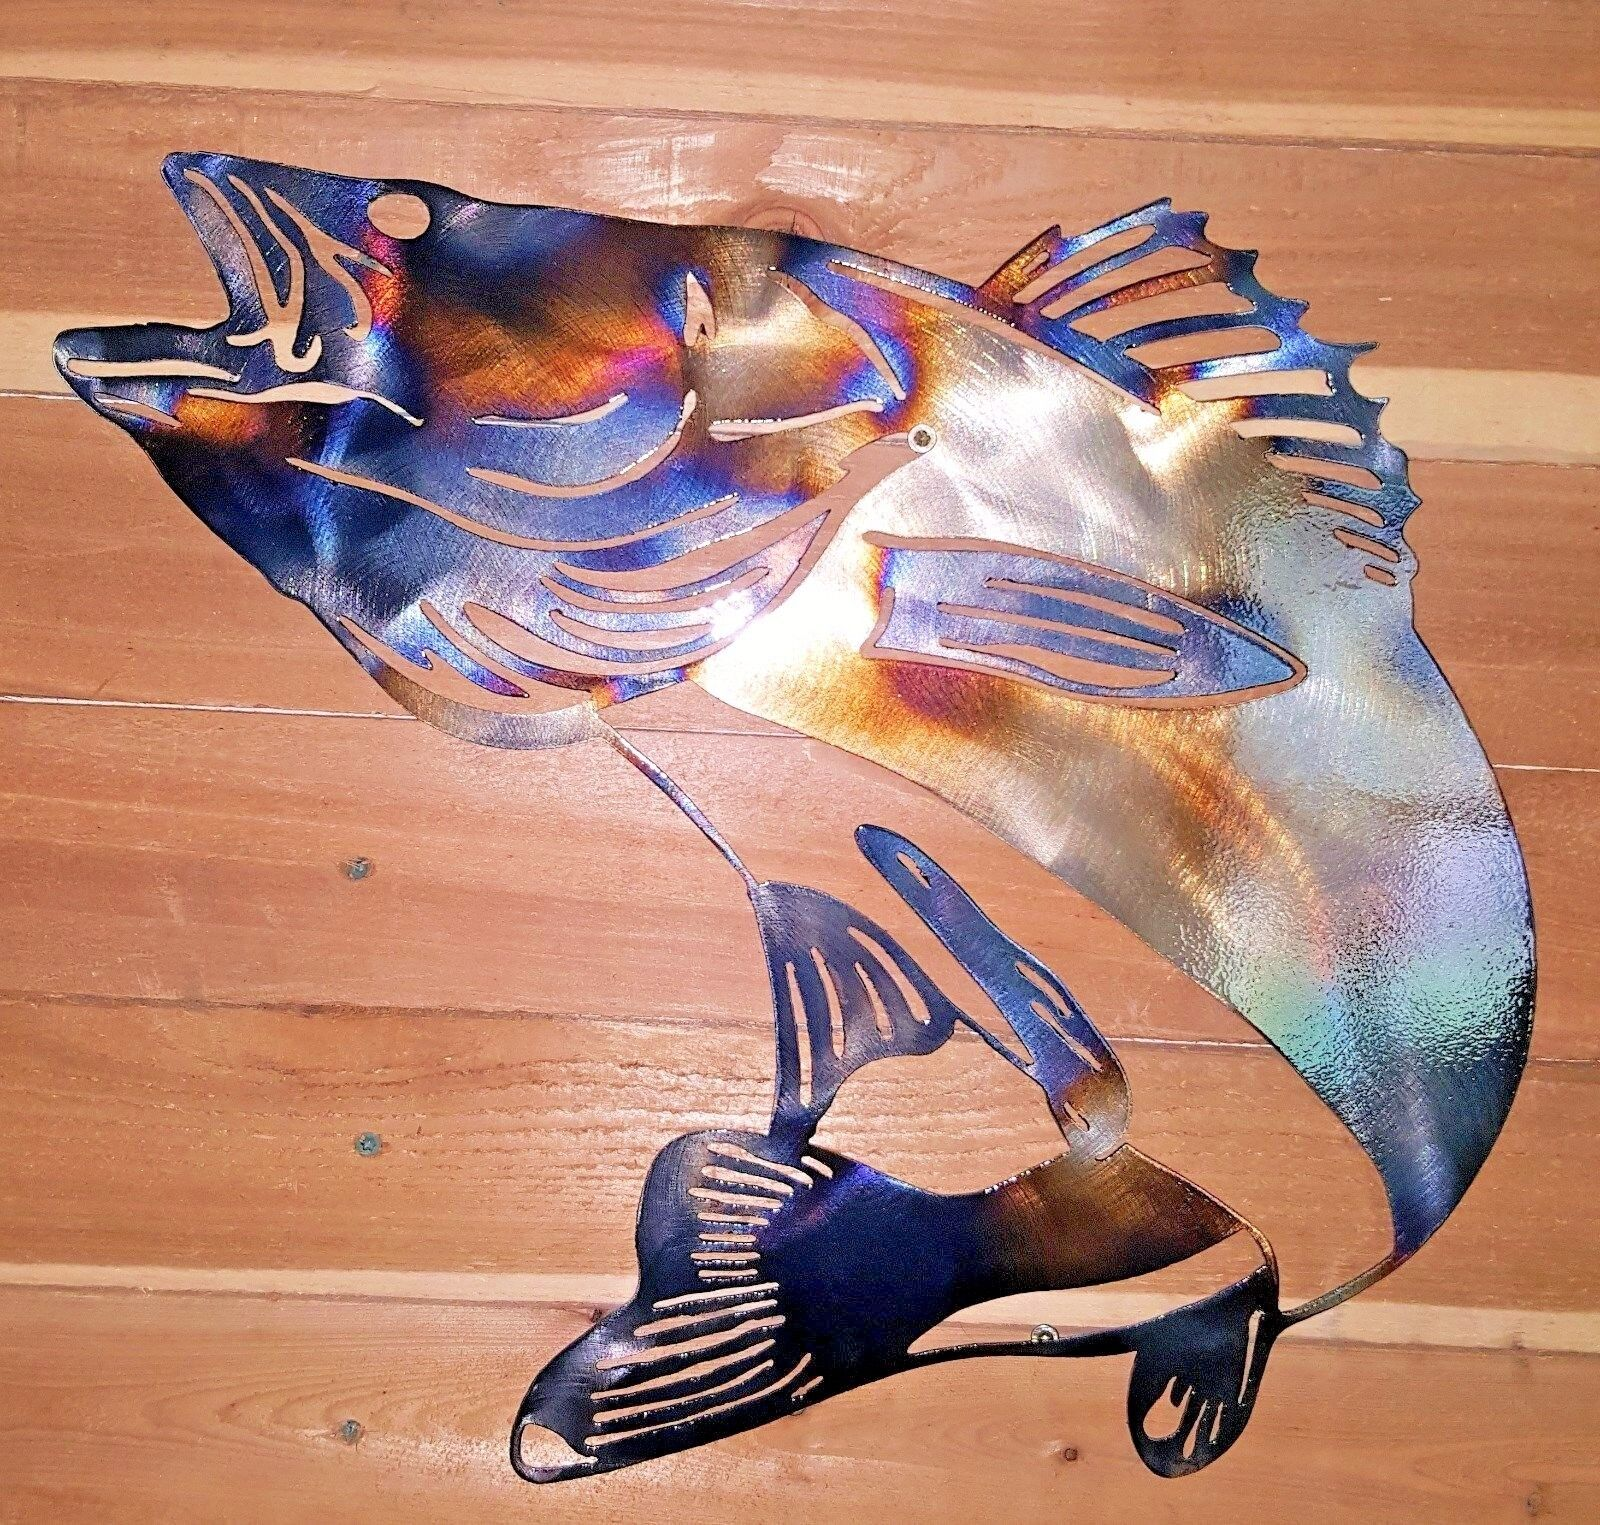 36  x 30  BIG FISH- walleye-Hand Made in Waco Texas. CNC Wall Art Decor